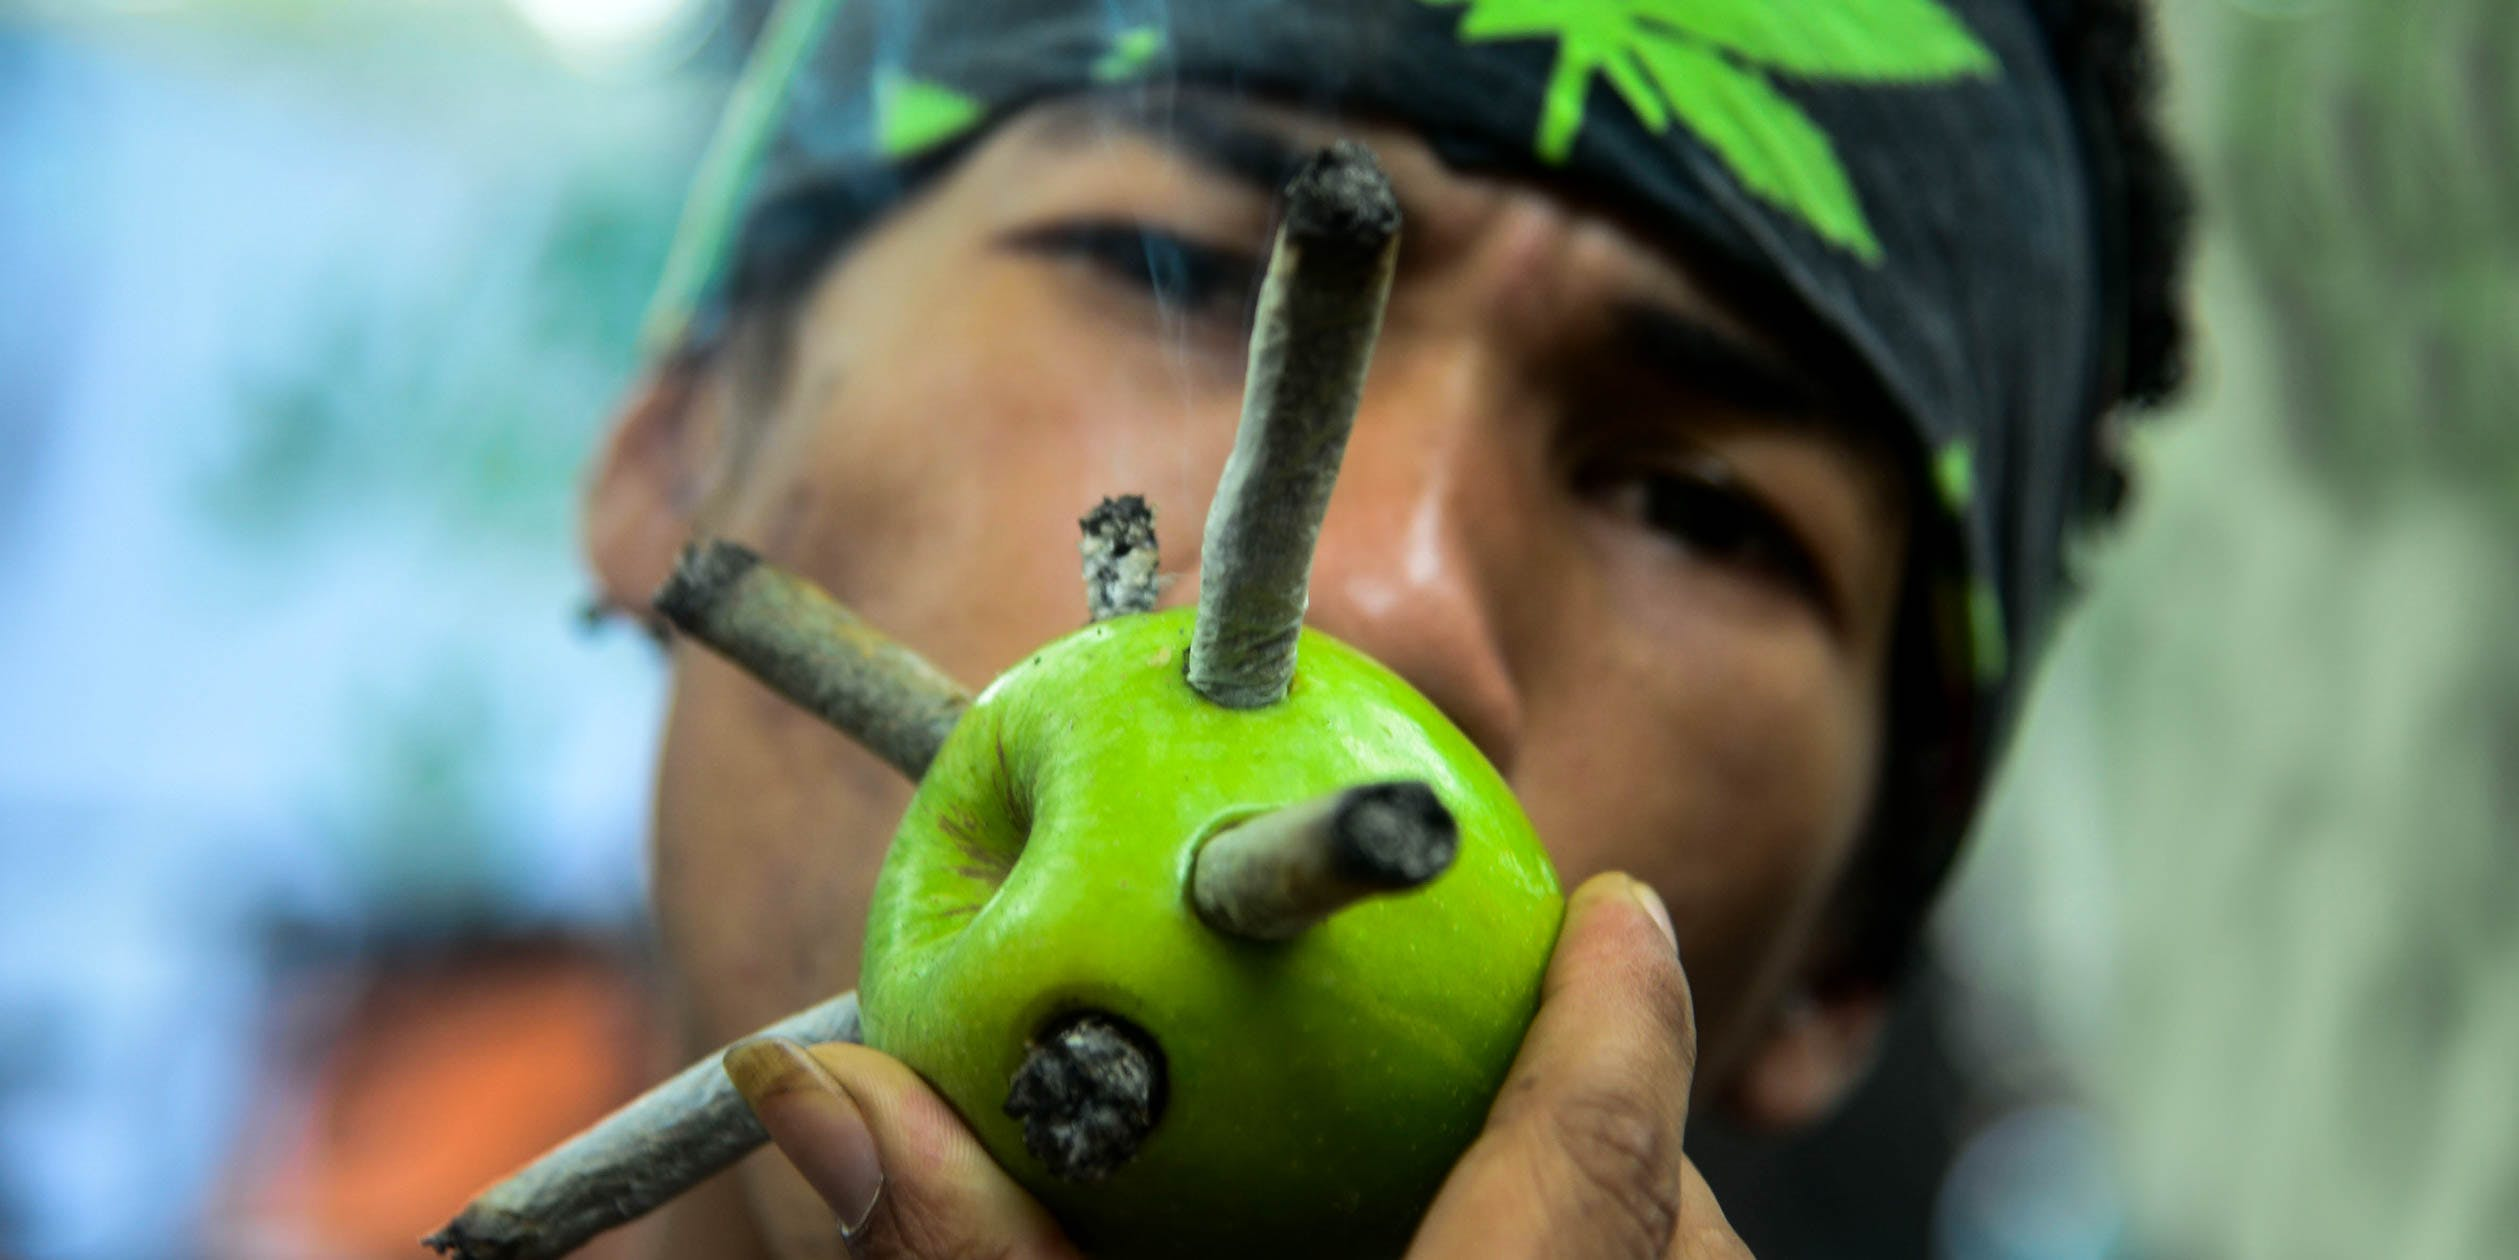 Most DIY Bongs Are Made From Apples And Bottles, Says Survey